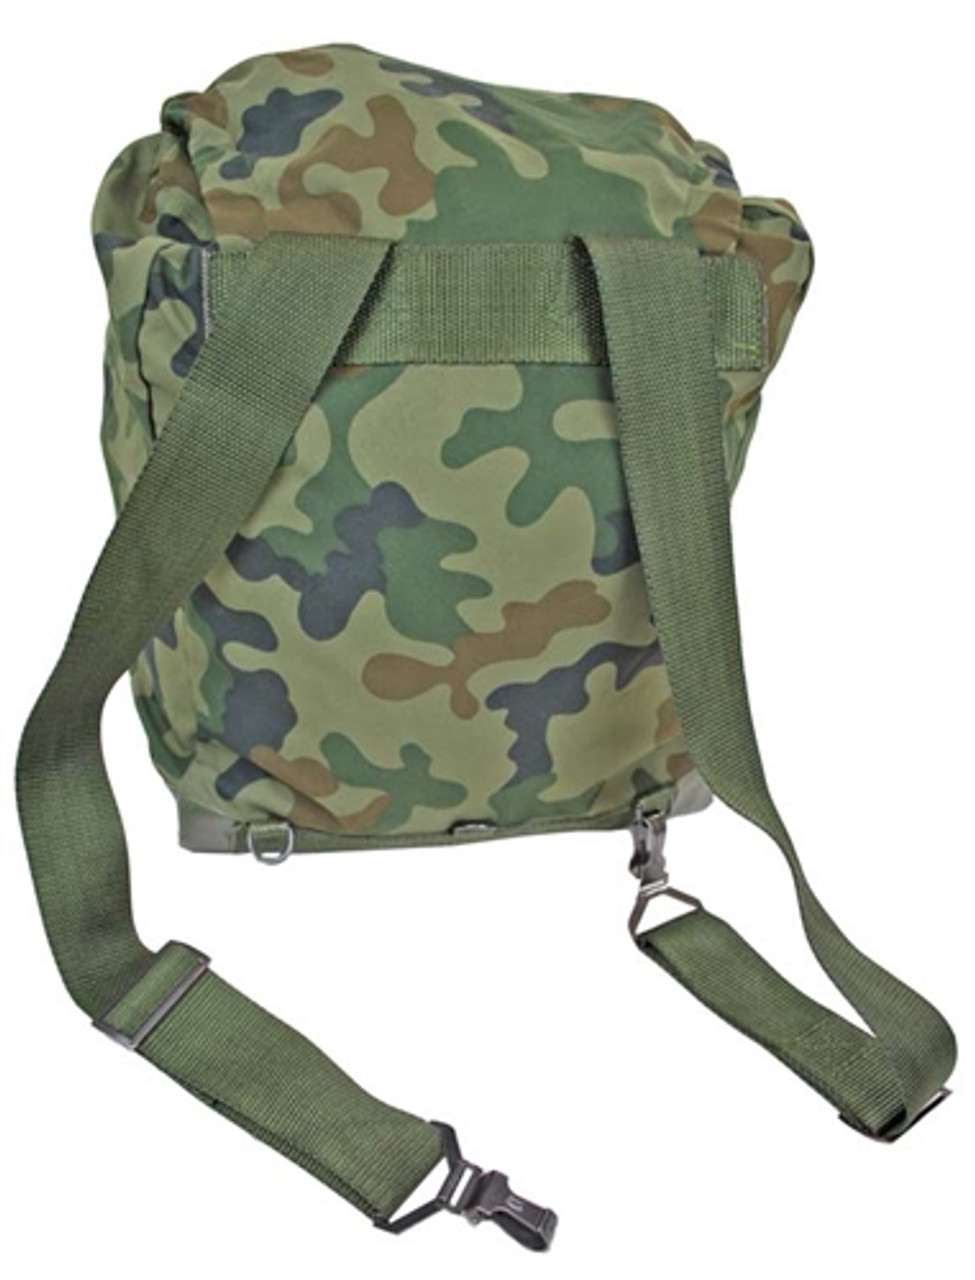 Polish New Style Camo Rucksack from Hessen Antique